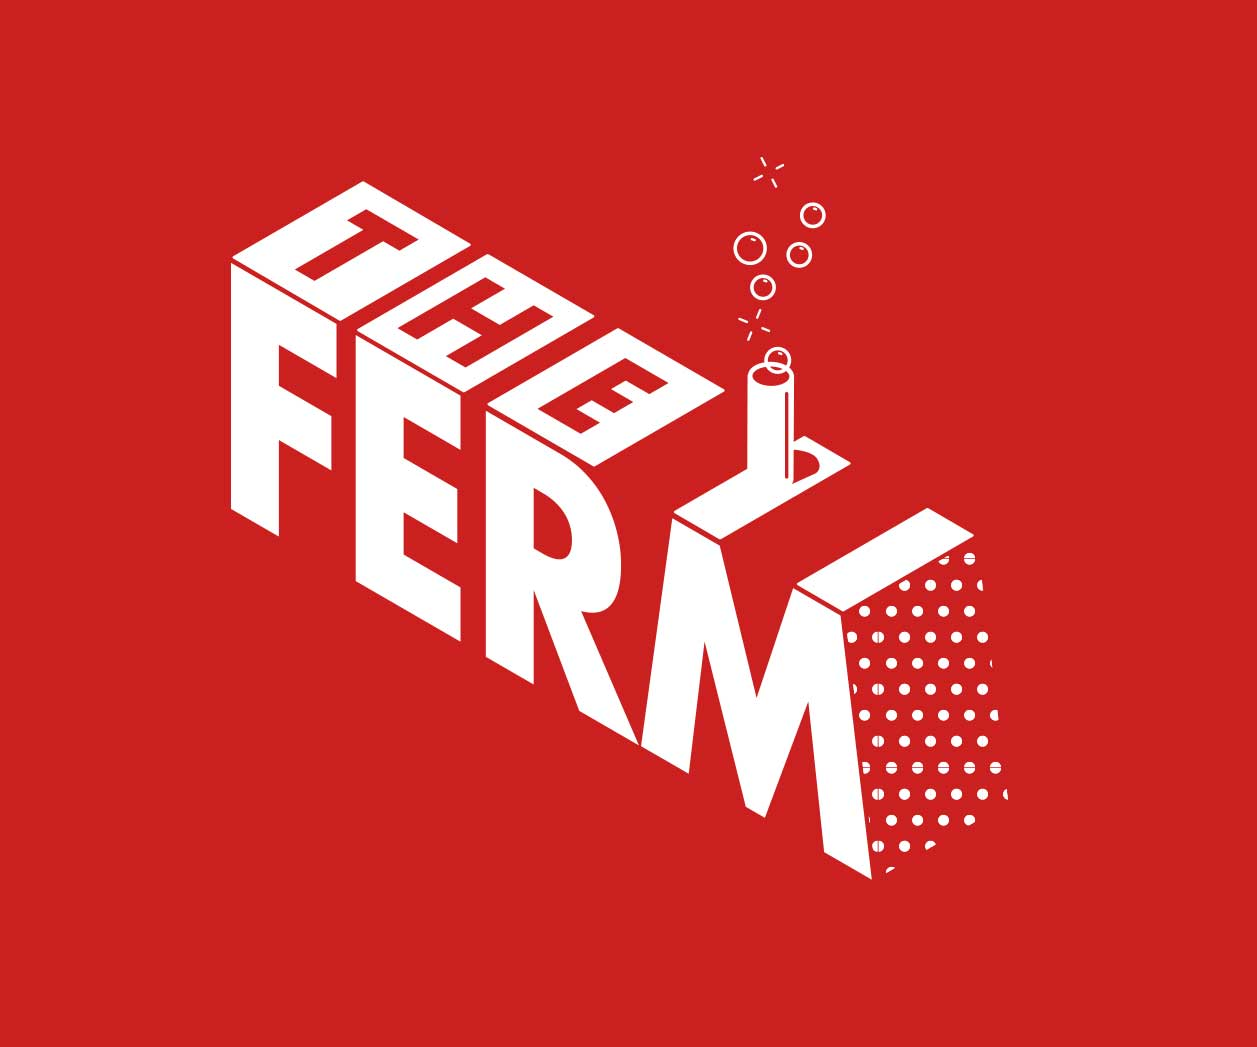 The Ferm